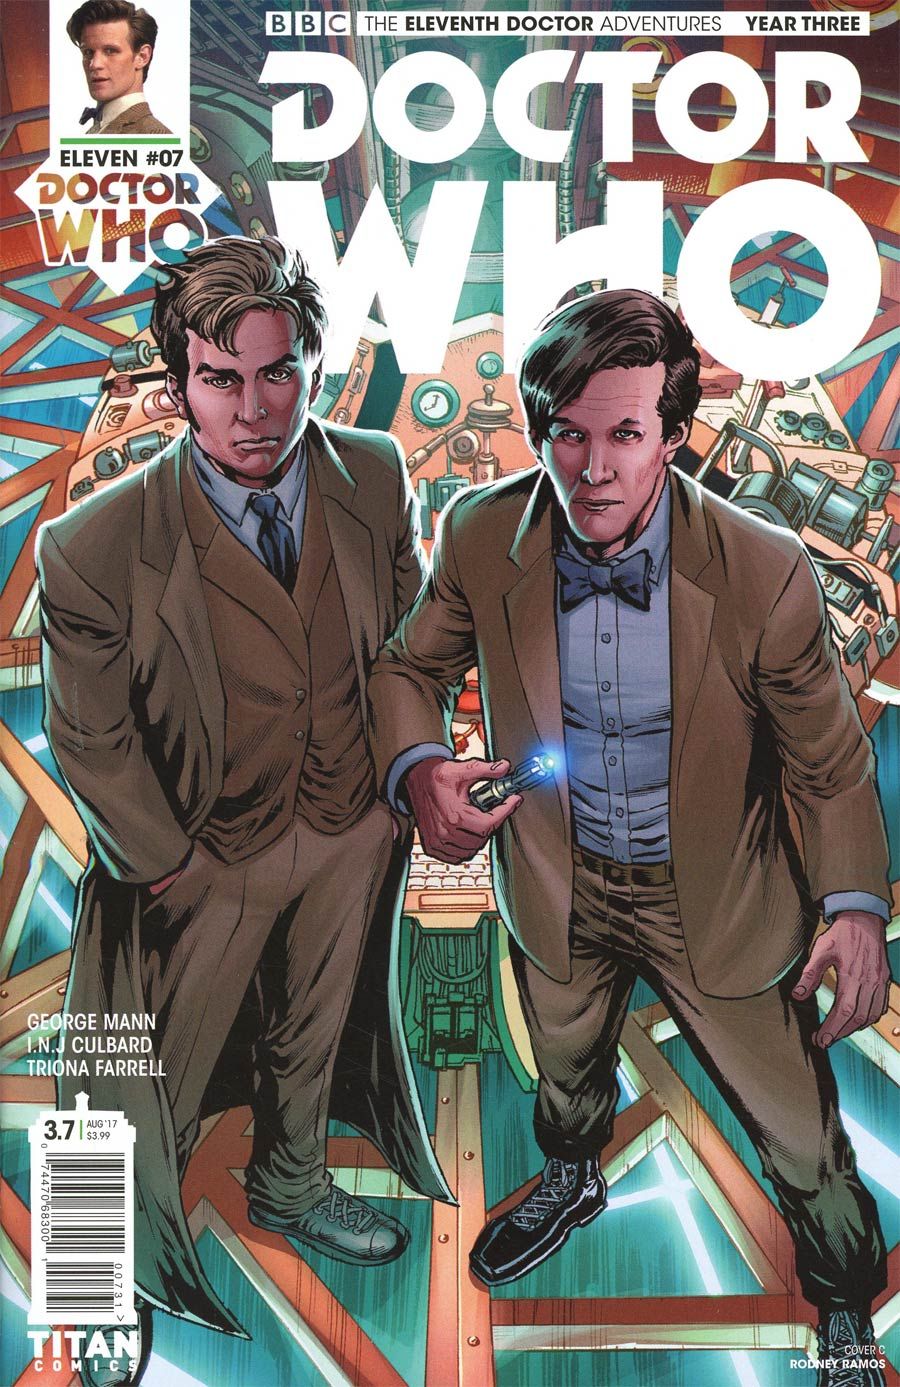 Doctor Who 11th Doctor Year Three #7 Cover C Variant Rodney Ramos Cover